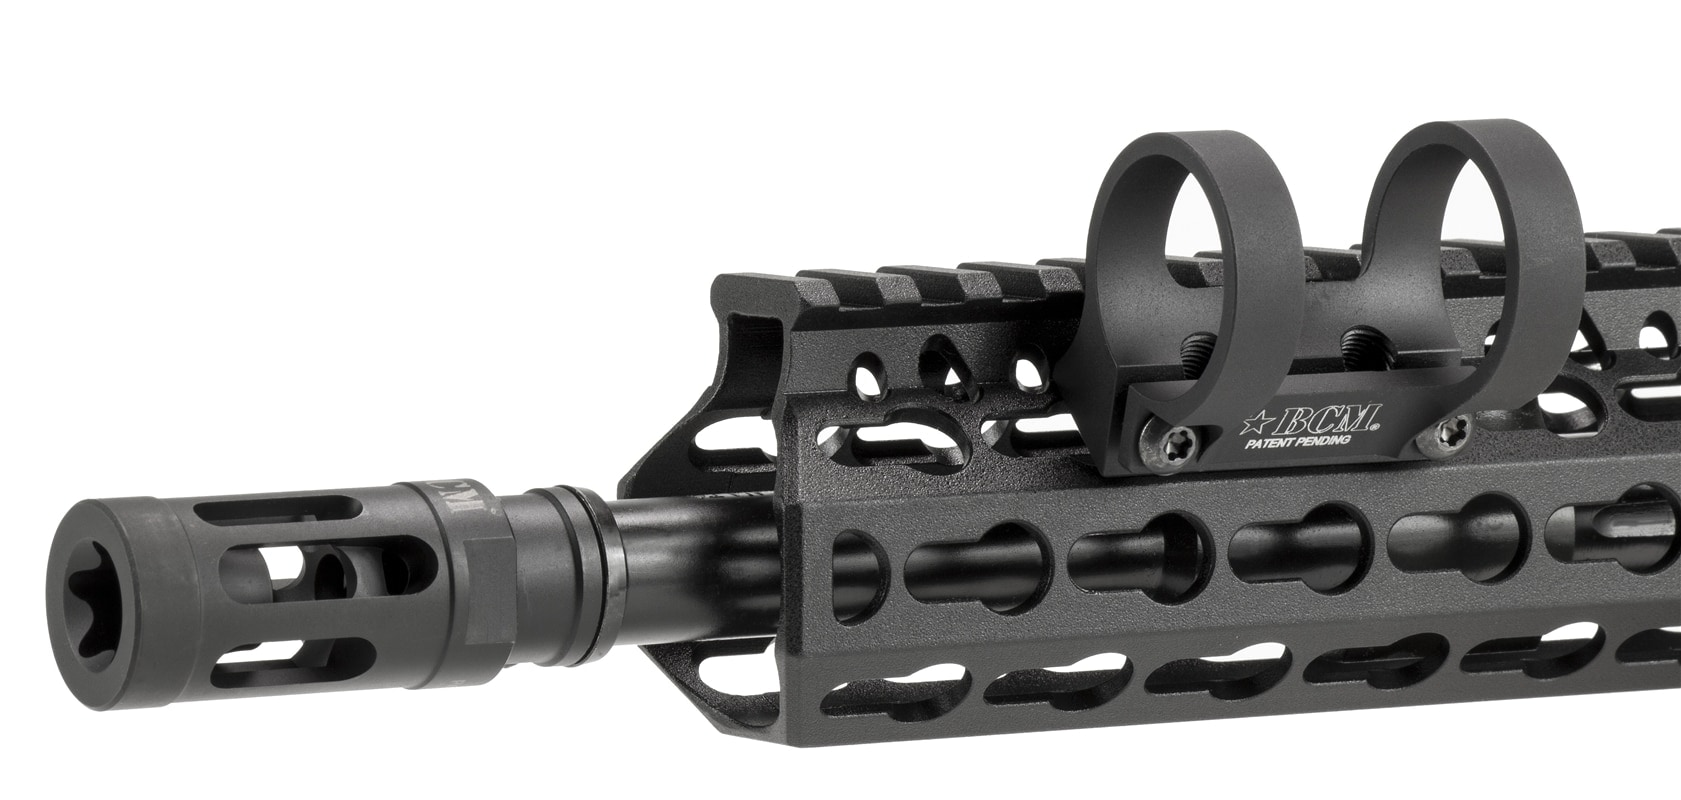 KeyMod utilizes keyhole shapes to mount rifle accessories to the handguard. (Photo: Bravo Company)